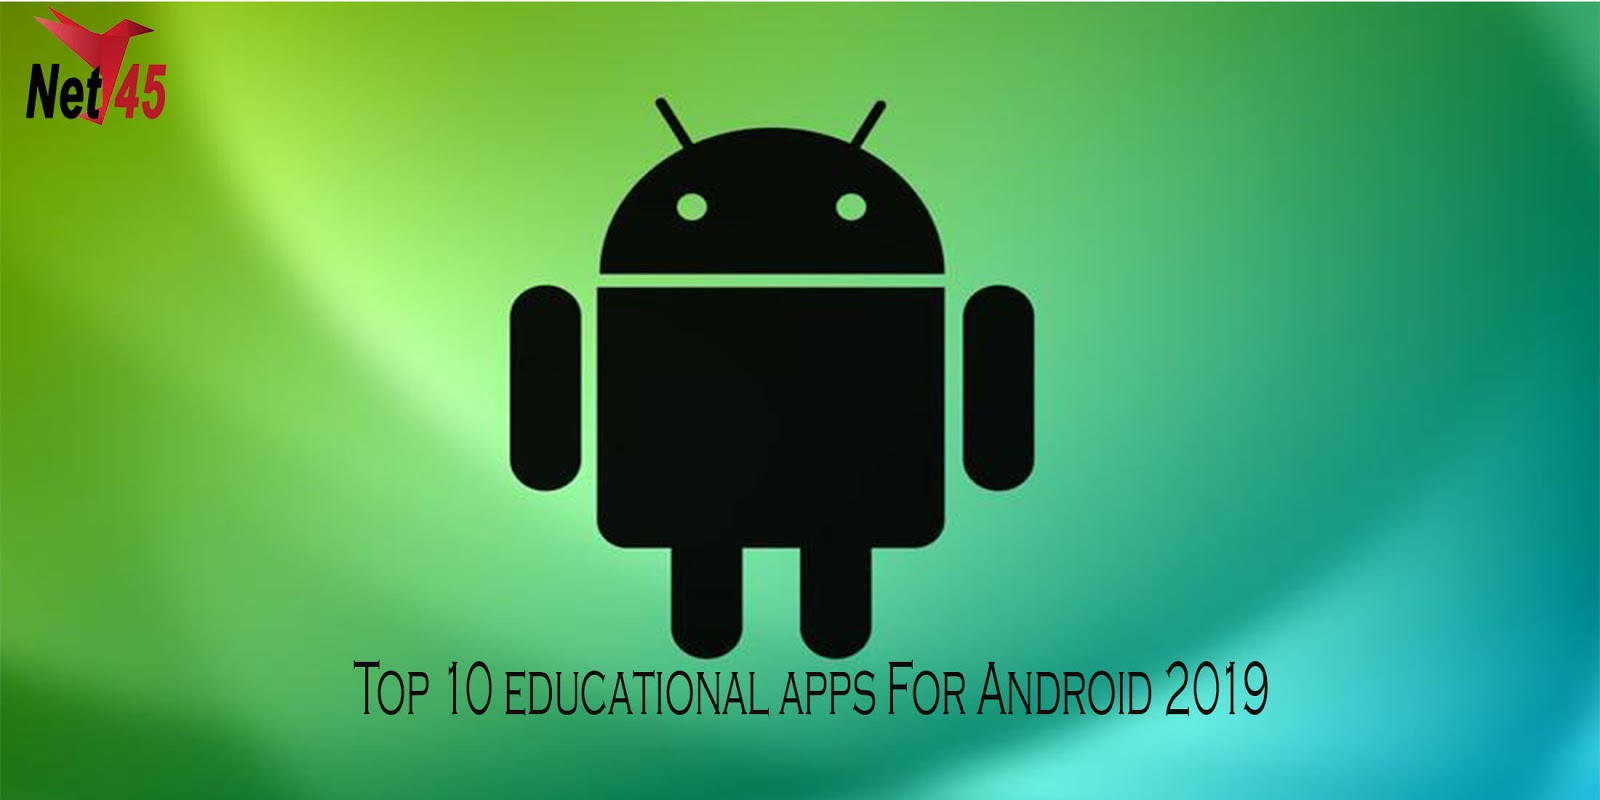 educational apps, mobile apps for education, best educational apps for adults